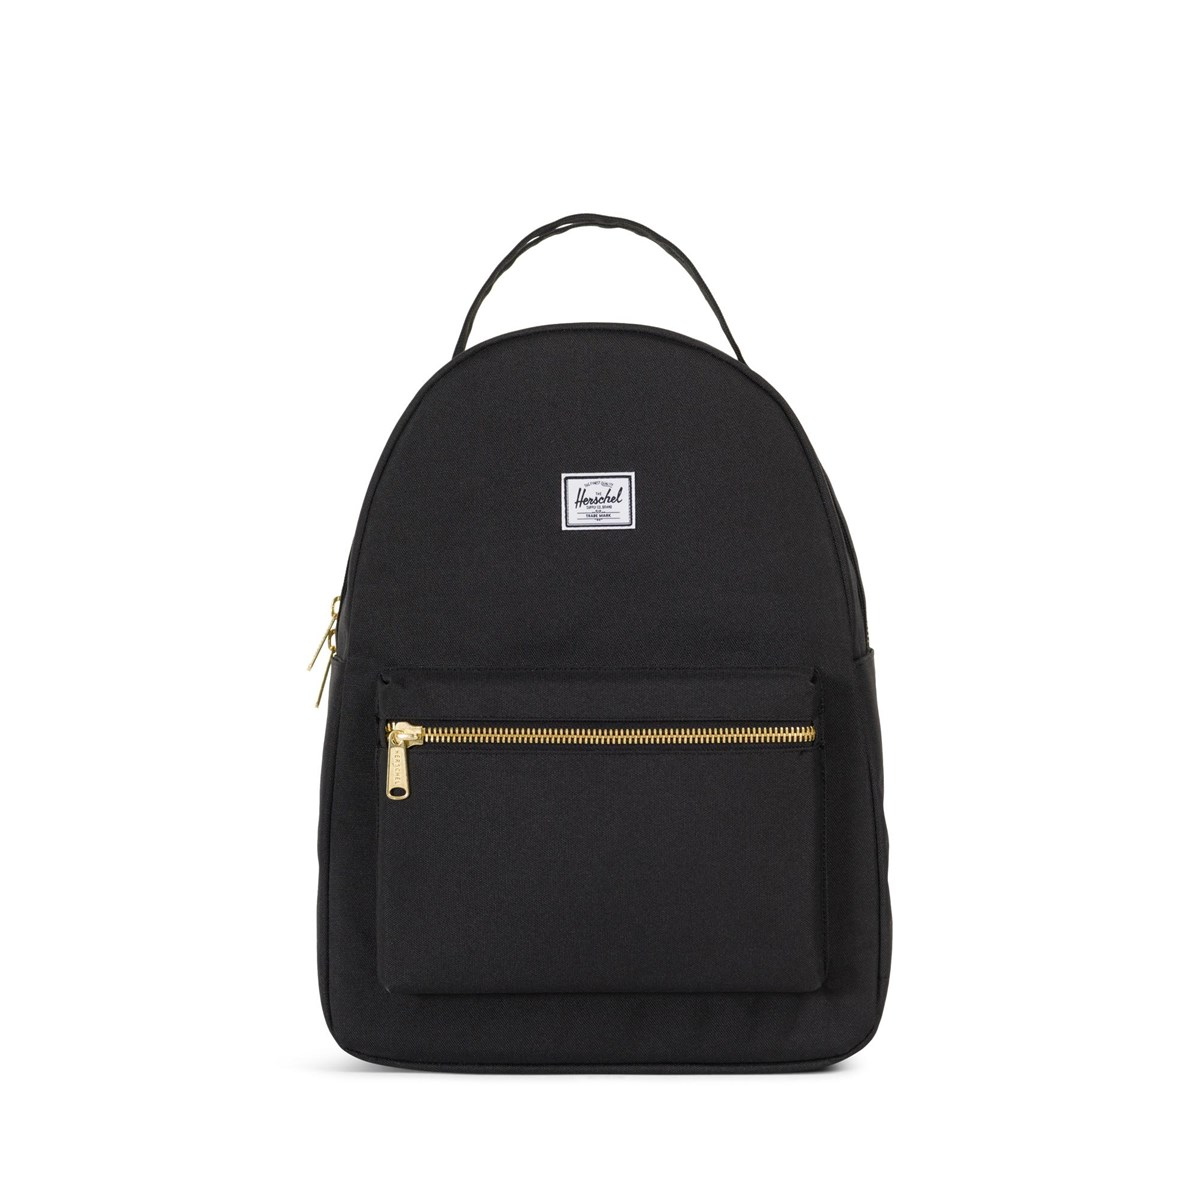 Nova Mid Volume Backpack in Black